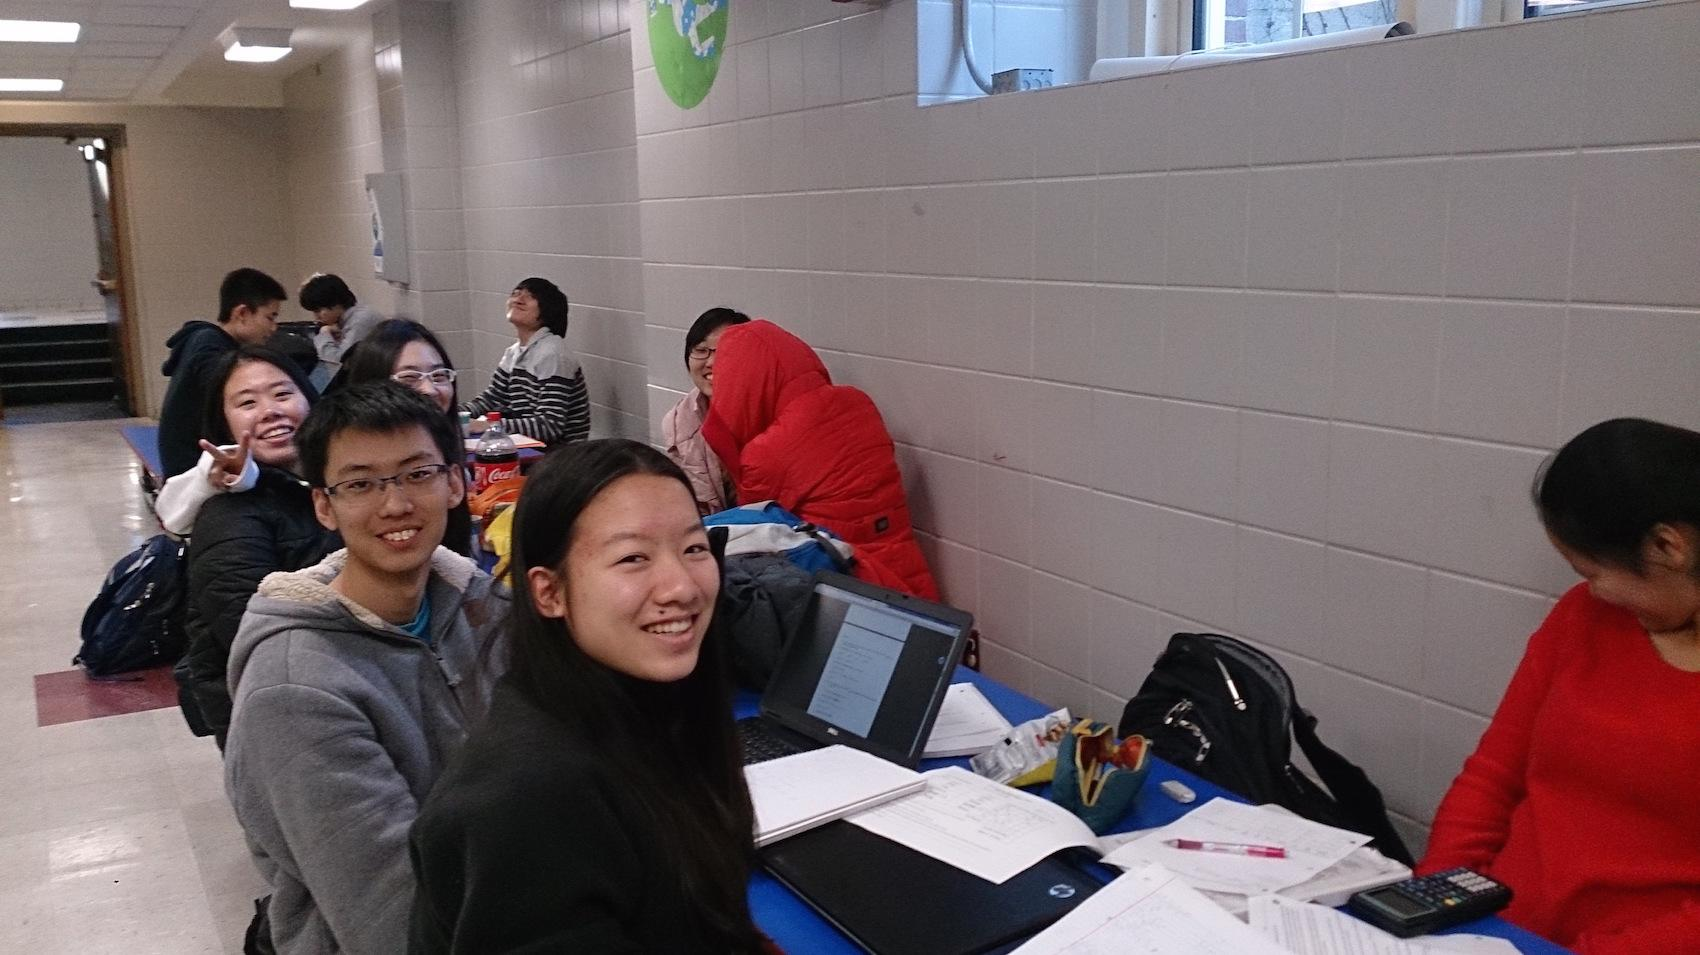 REEHAM CHOUDREY/ SAGAMORE STAFF   Math Team members wait for their event during a GBML competition in the cafeteria on Jan. 13 2016.